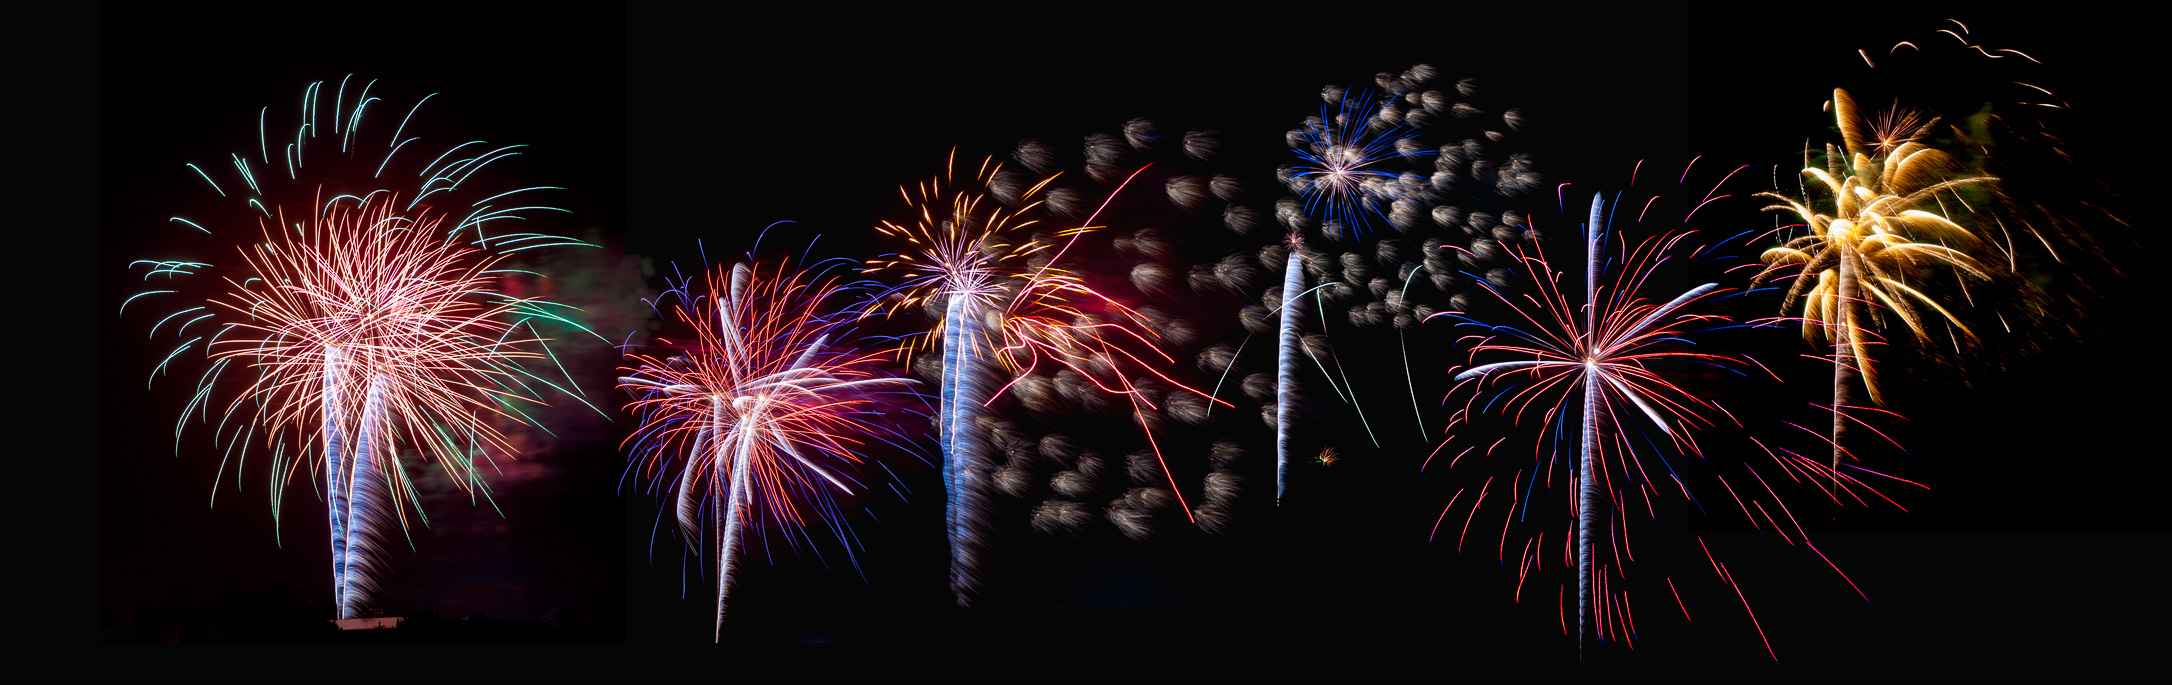 20140704_July_4_Fireworks_001